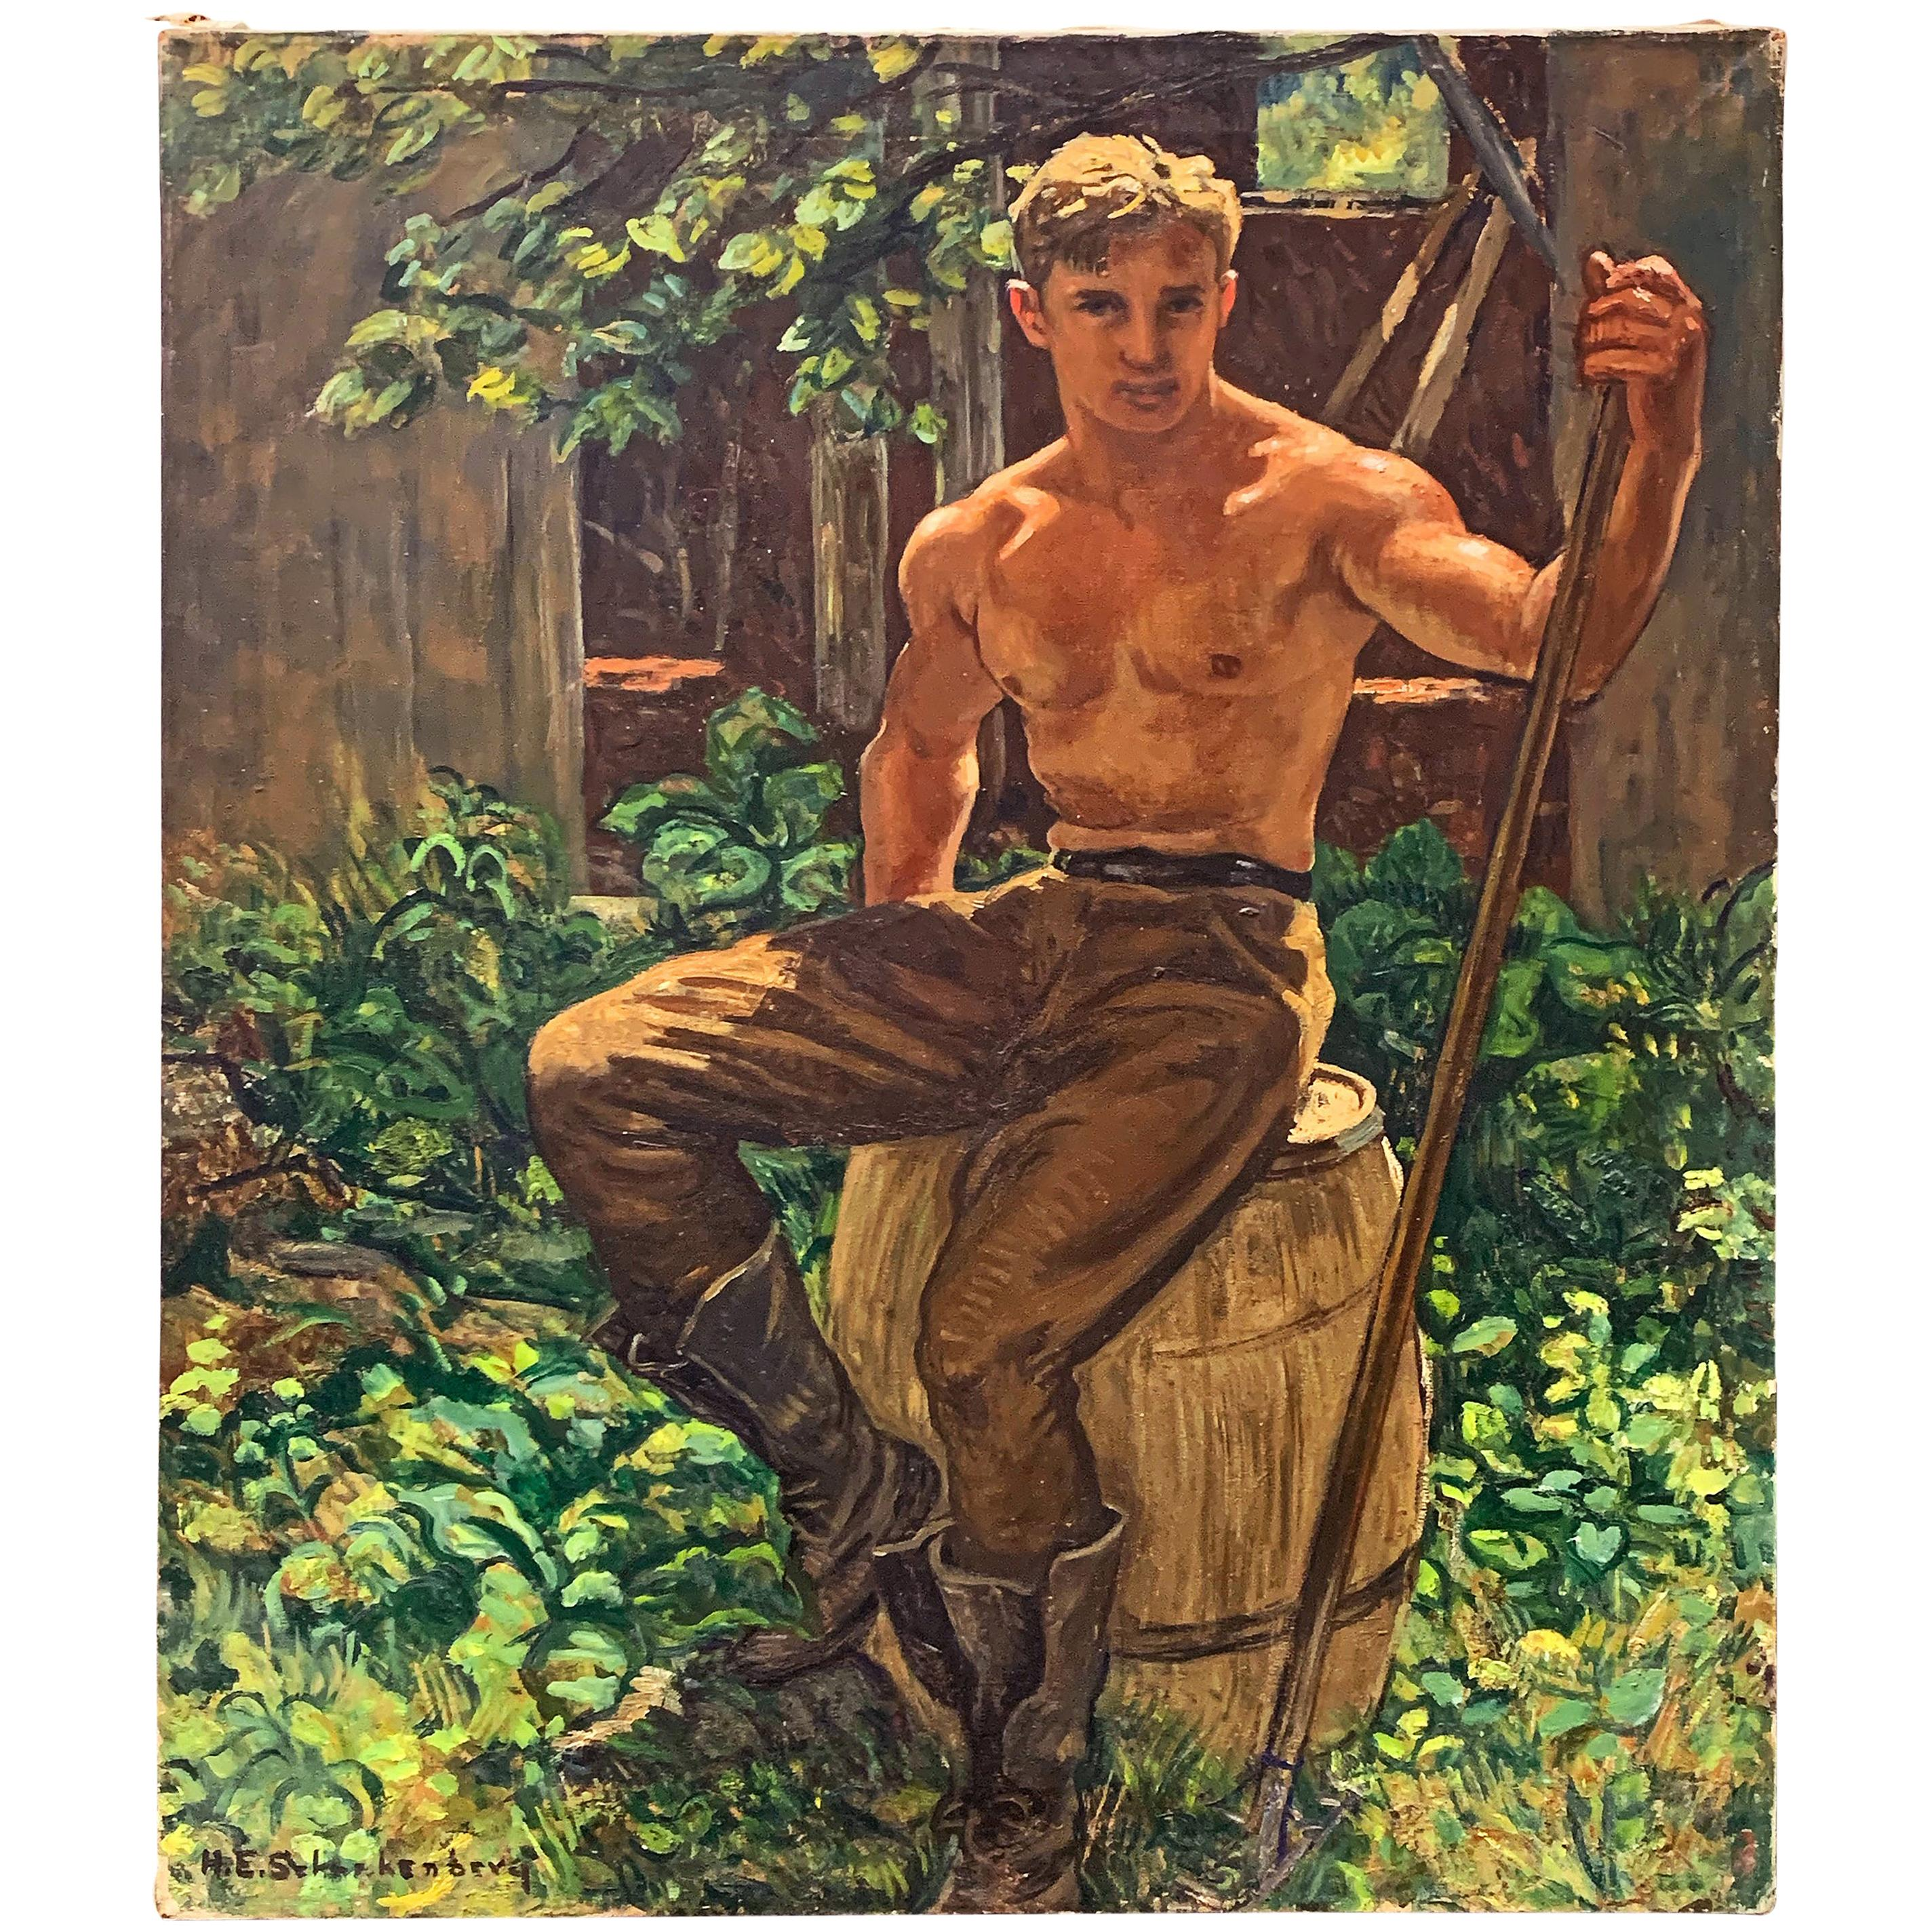 """""""A Moment's Rest,"""" Painting of Shirtless Male Worker, Schnakenberg, WPA Muralist"""